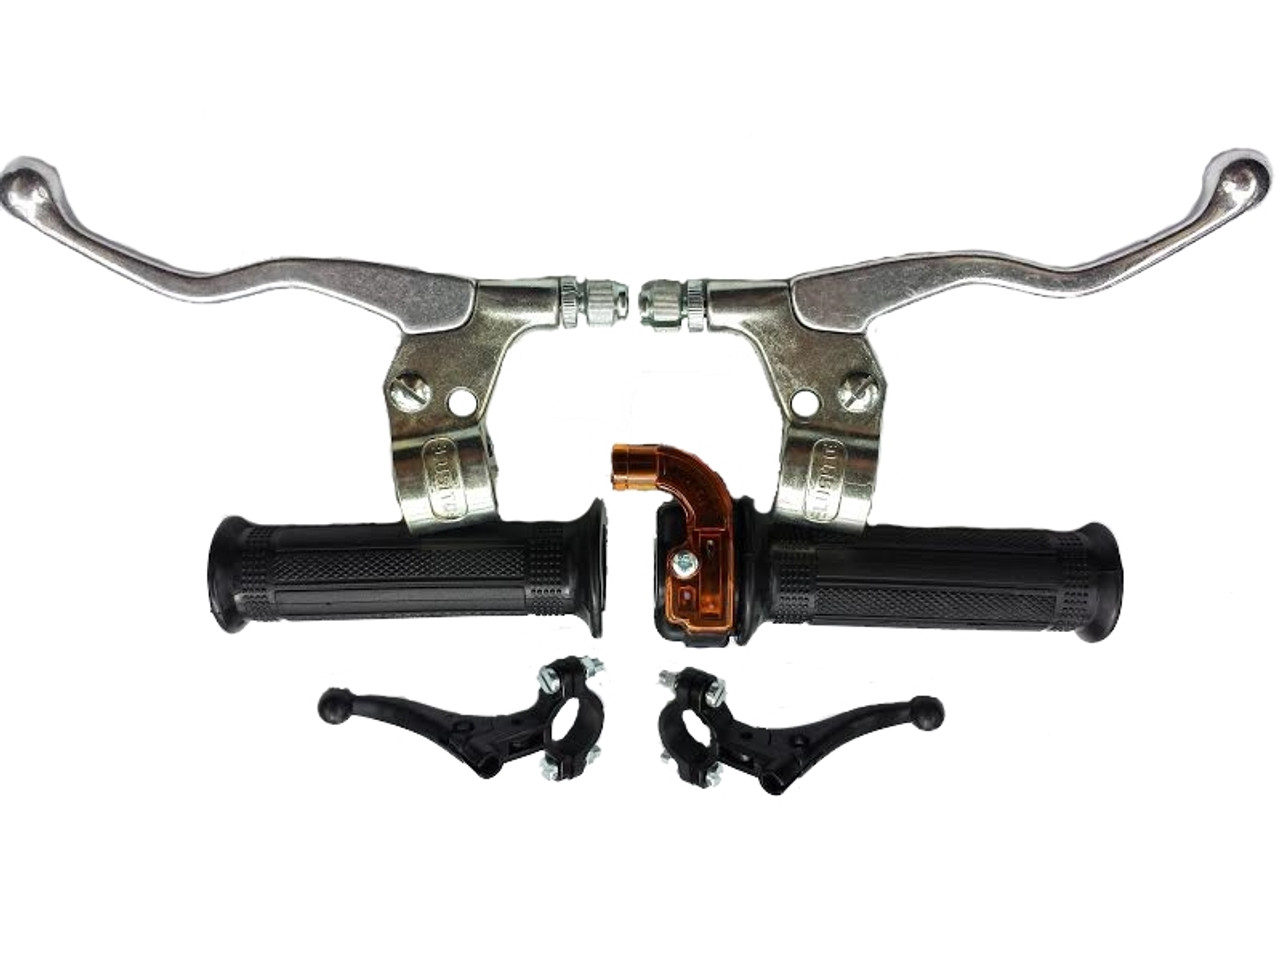 Universal Moped Hand Control Set - Silver Levers